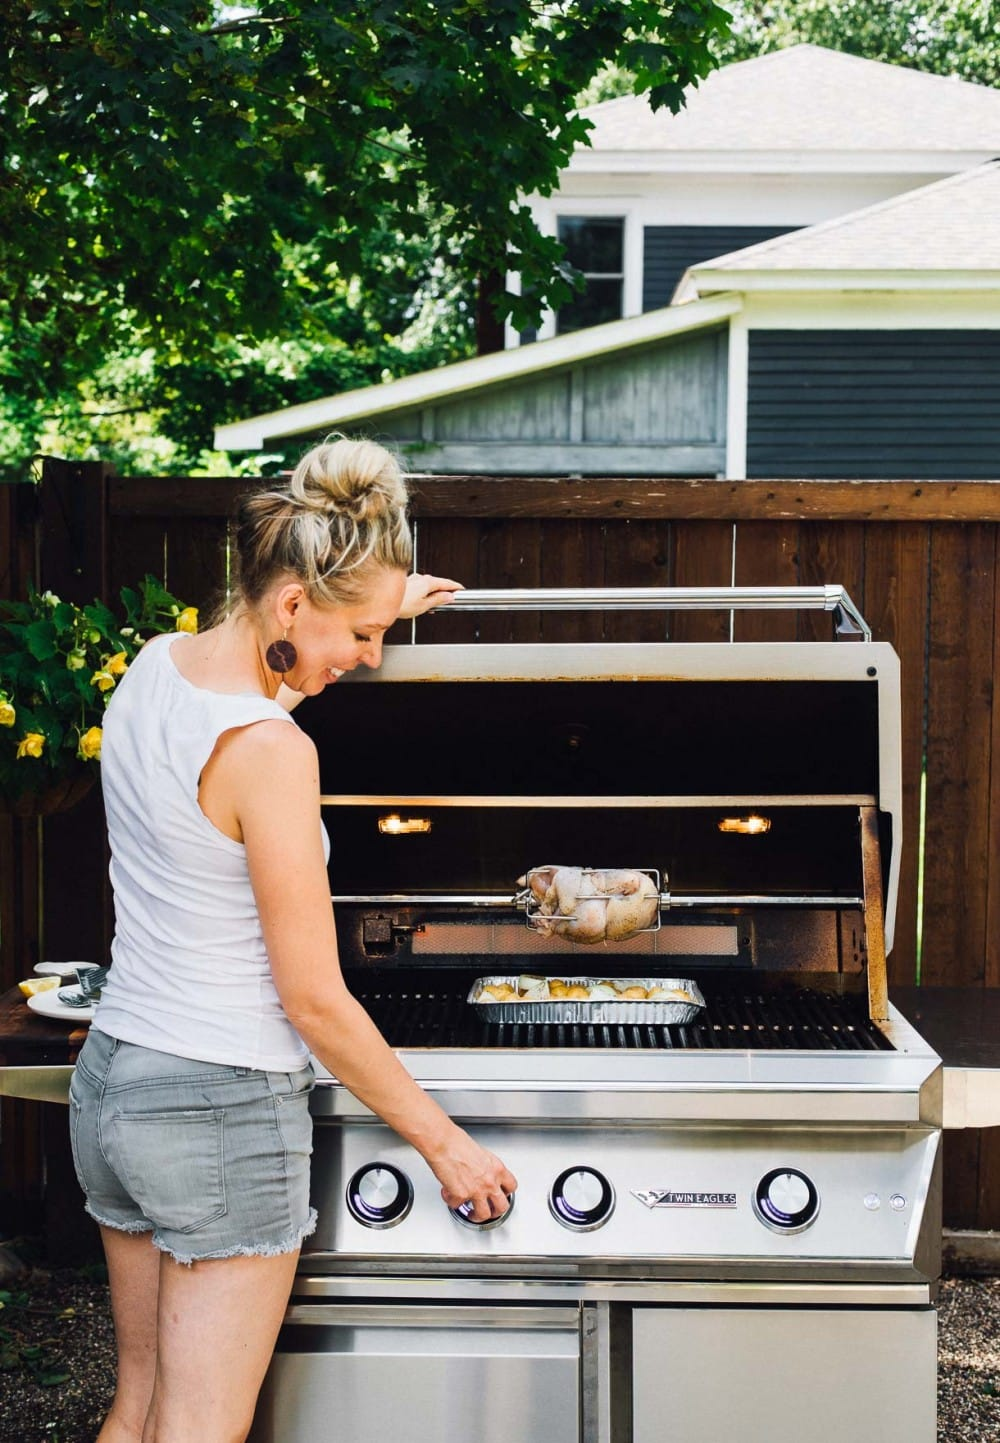 girl standing in front of a grill, with a chicken on a rotisserie